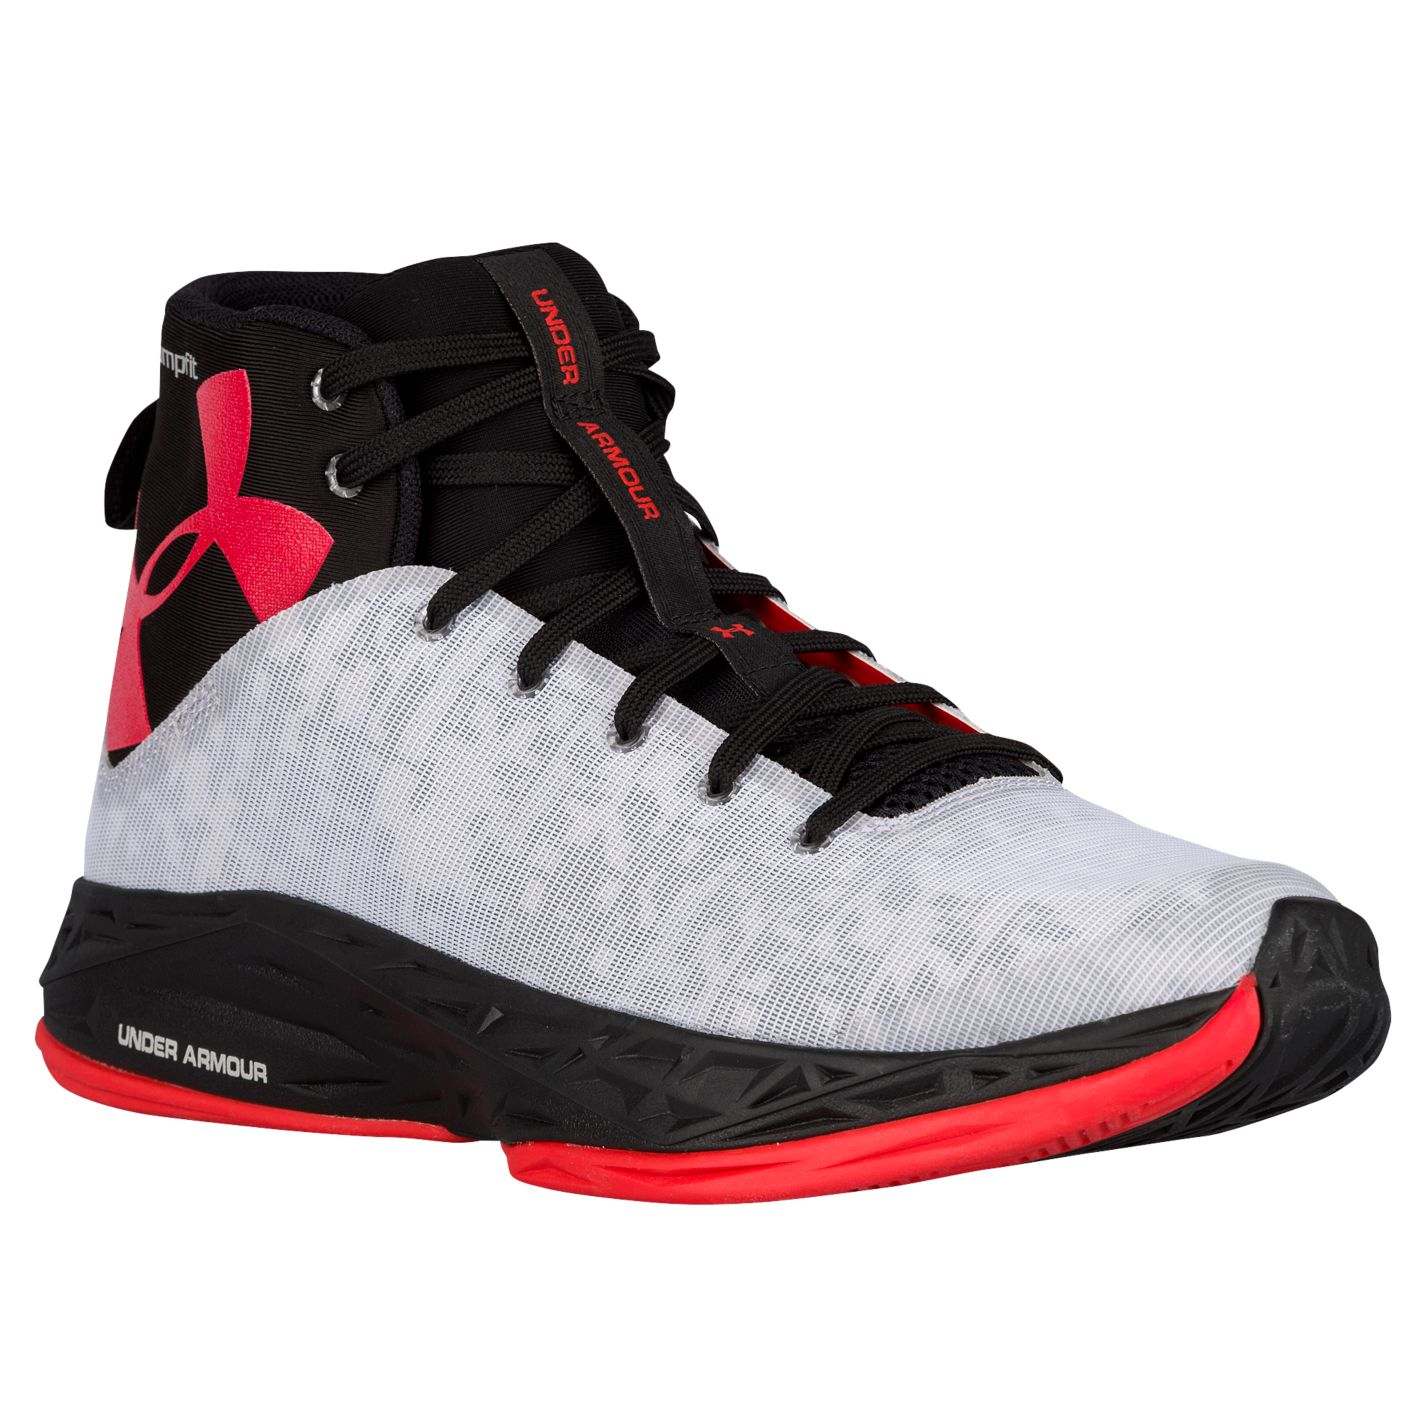 The Under Armour Fire Shot is Available Now 1